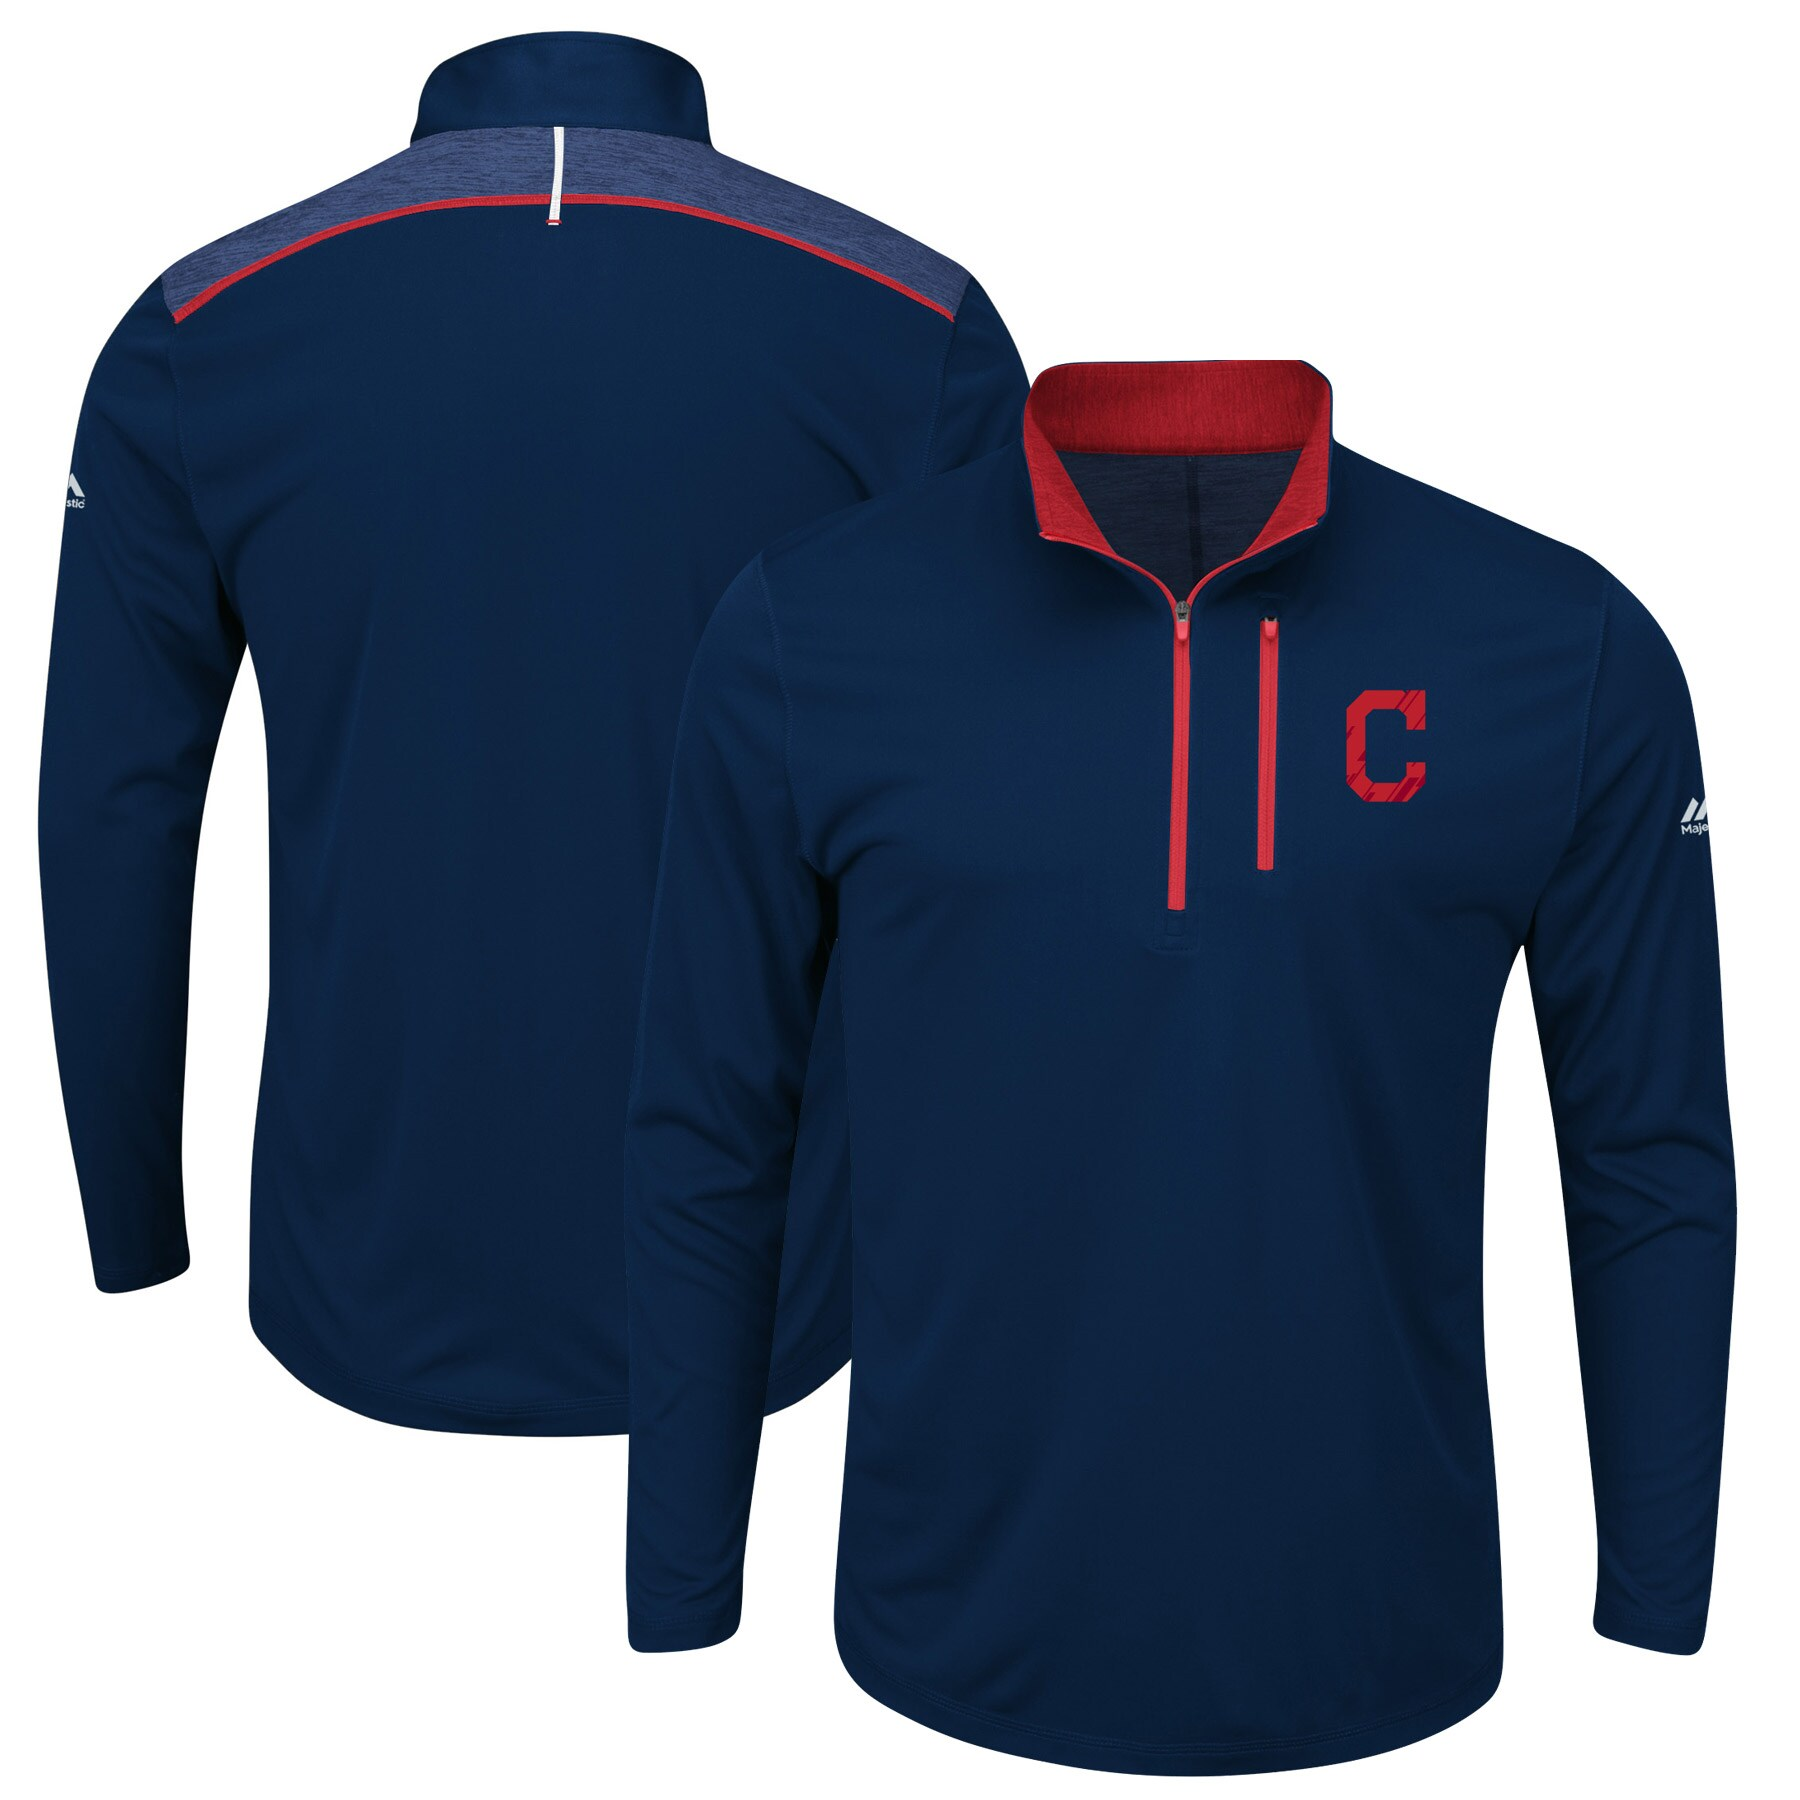 Cleveland Indians Majestic Big & Tall 643 Half-Zip Pullover Jacket - Navy